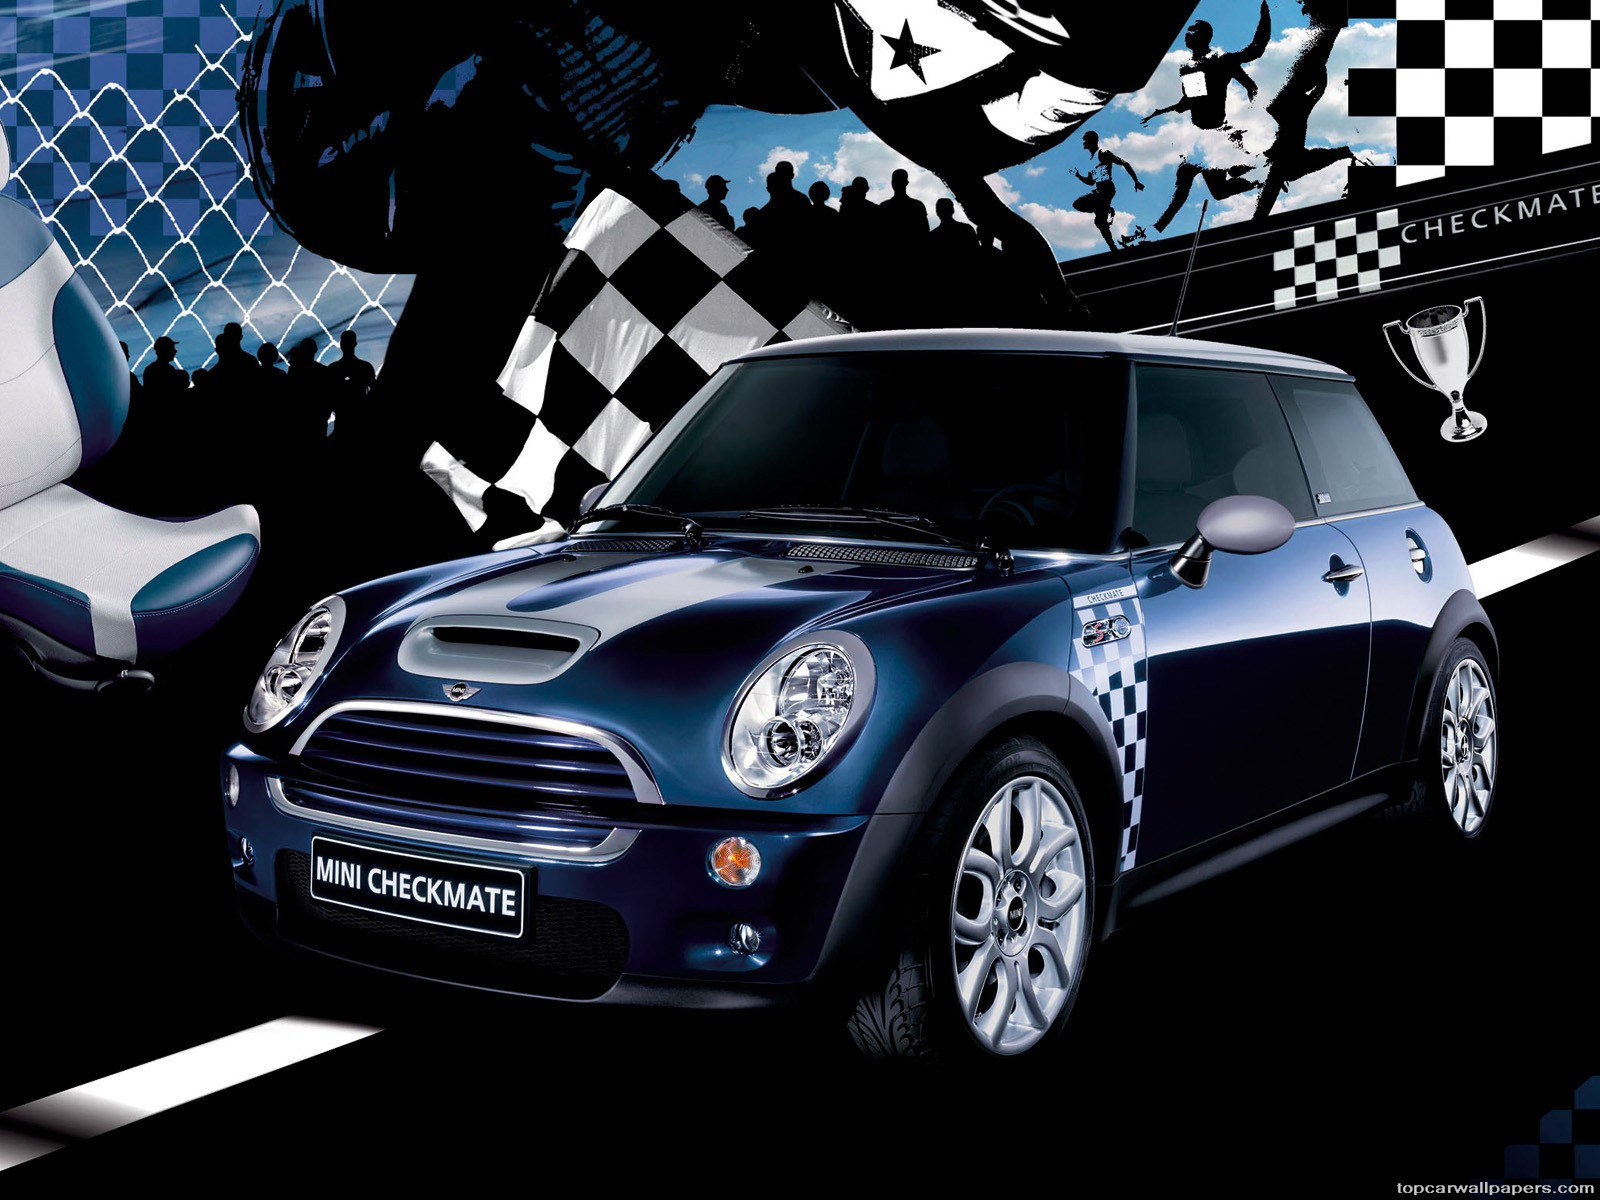 wallpapers mini top car wallpapers mini wallpapers 2007 mini cooper 1600x1200